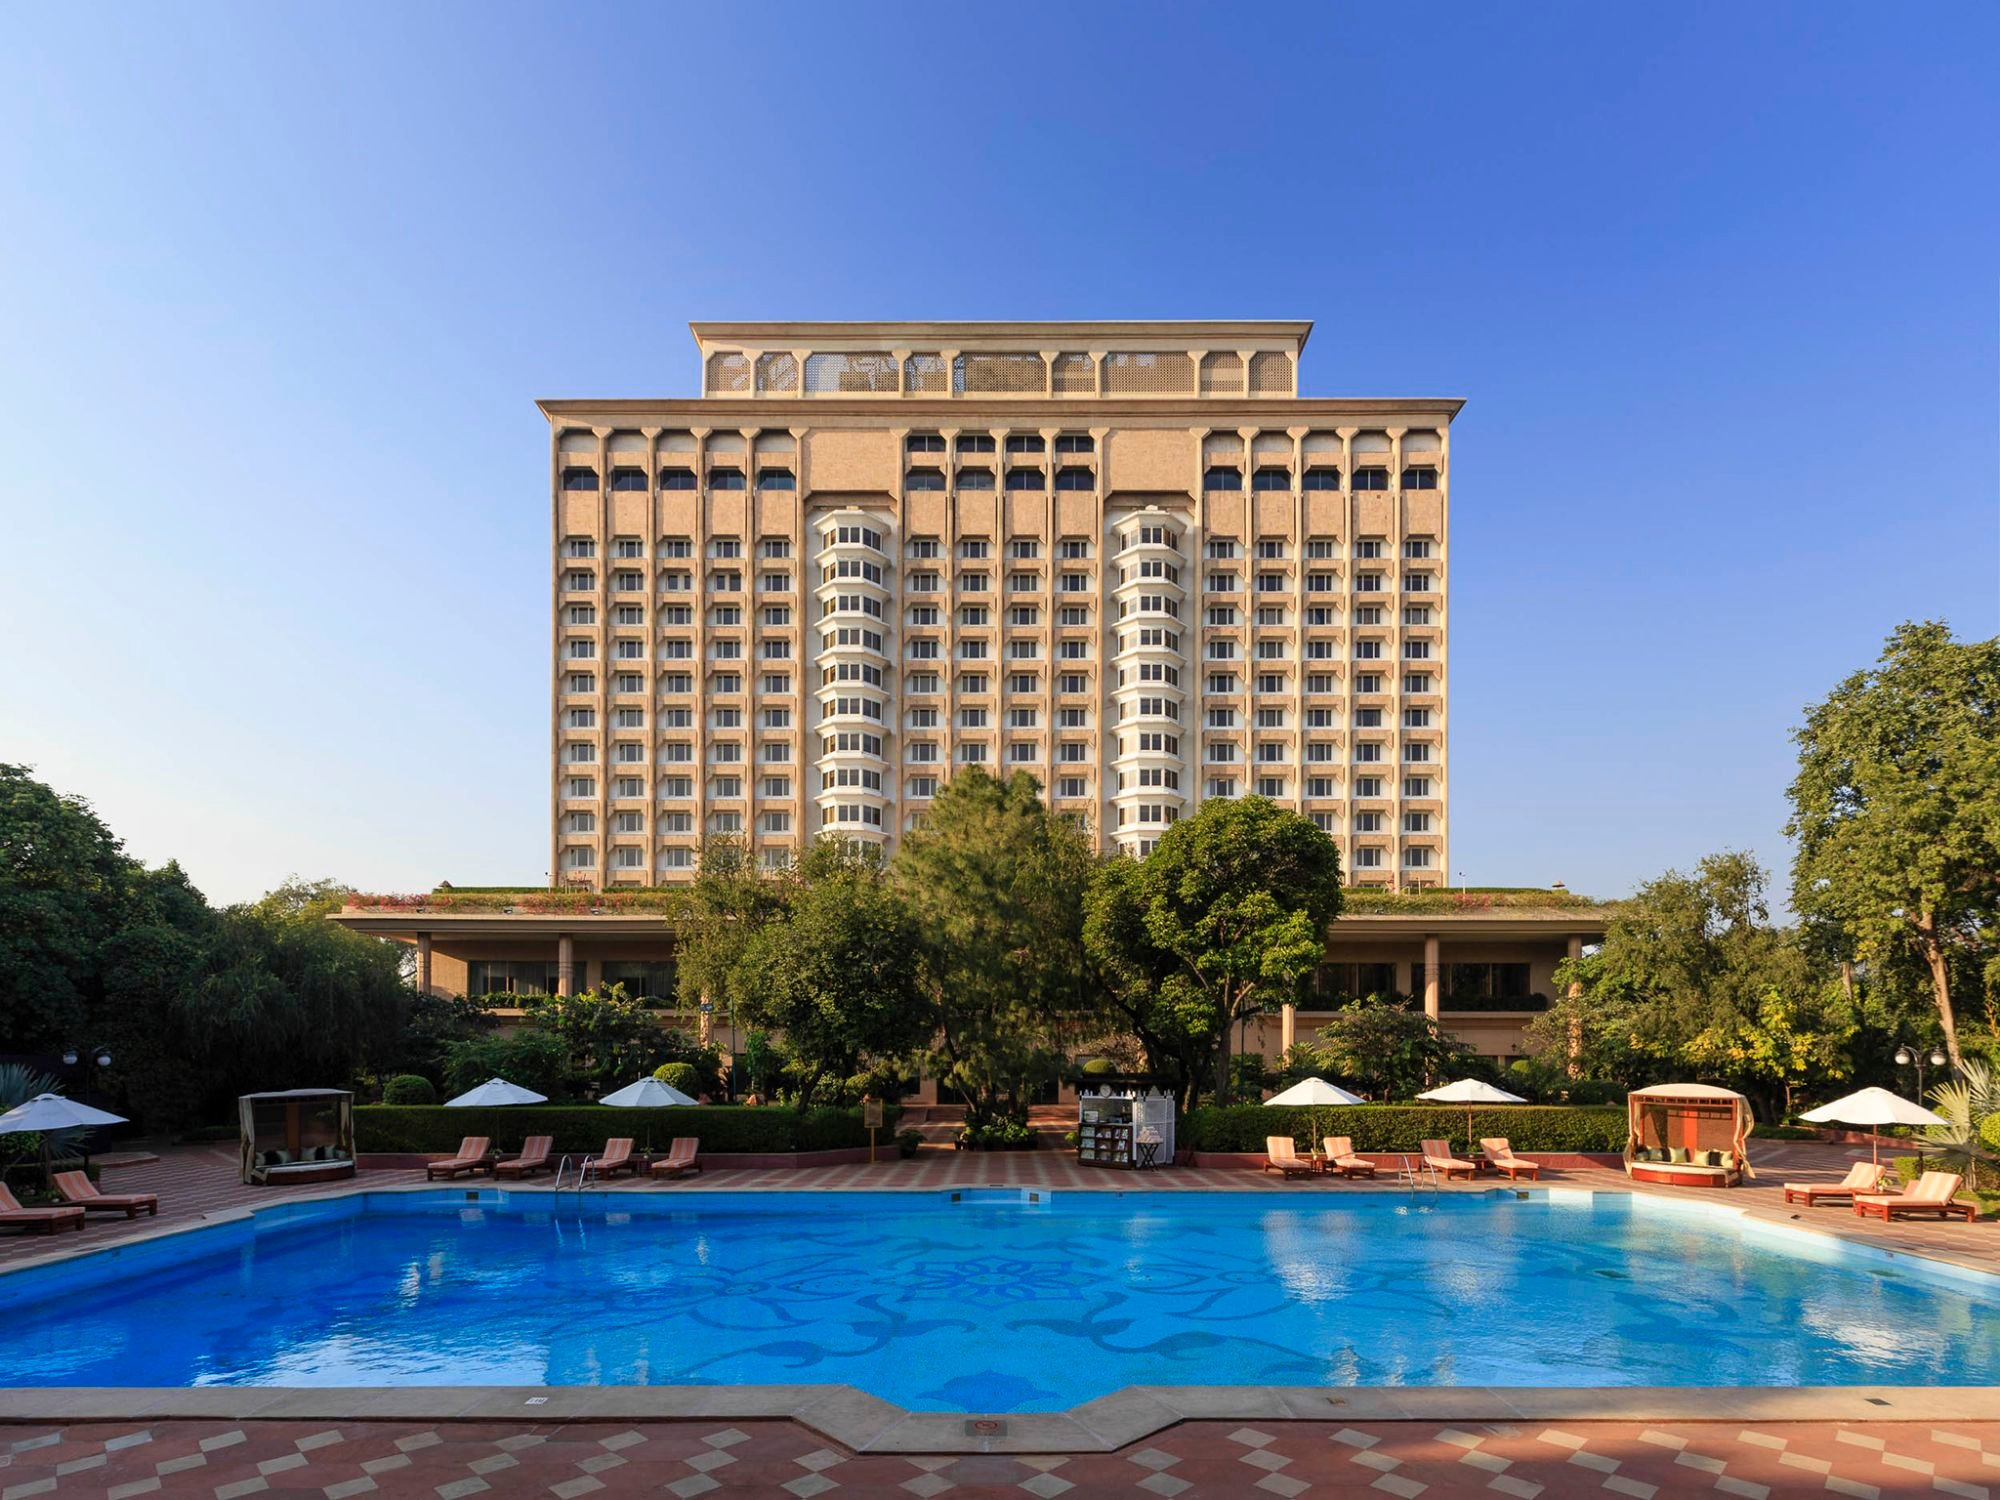 How to Find Best Hotels - Hotel Websites